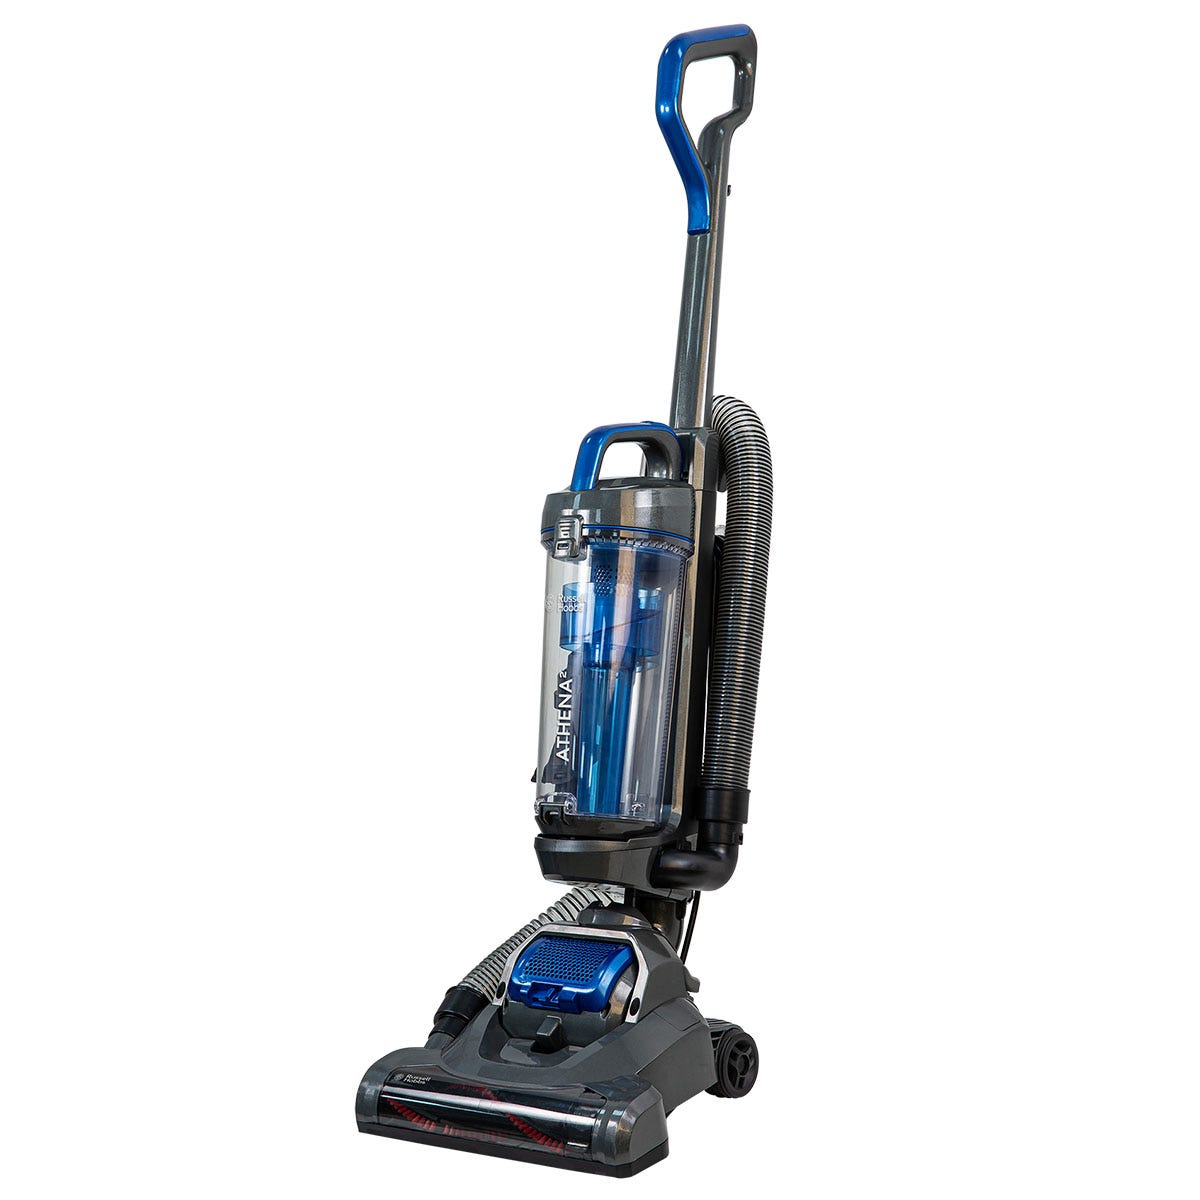 Russell Hobbs RHUV5101 Athena2 2L Upright Vacuum Cleaner - Spectrum Grey and Blue